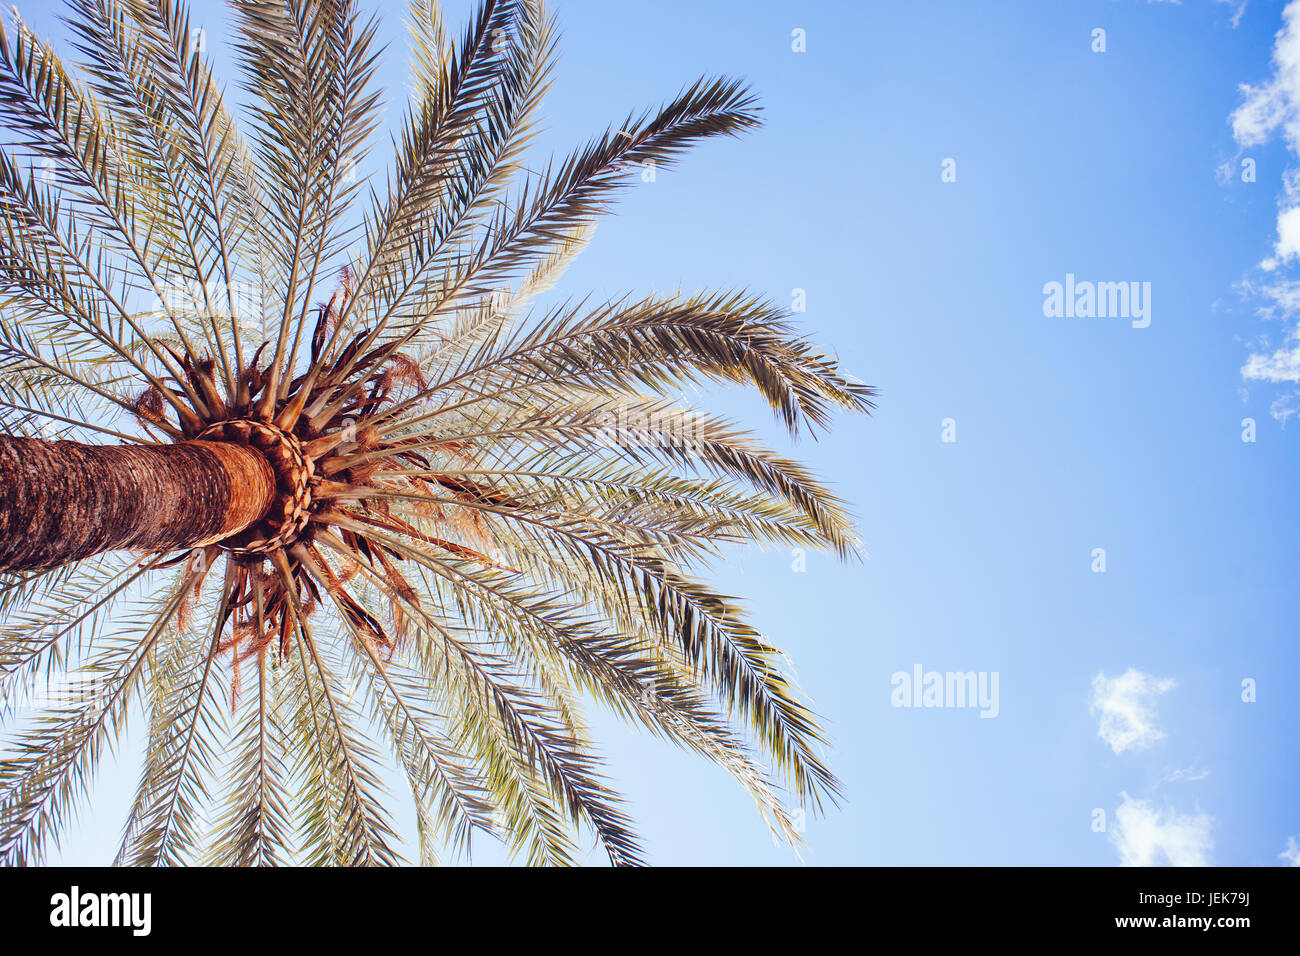 palm tree from below with a nice blue sky - Stock Image